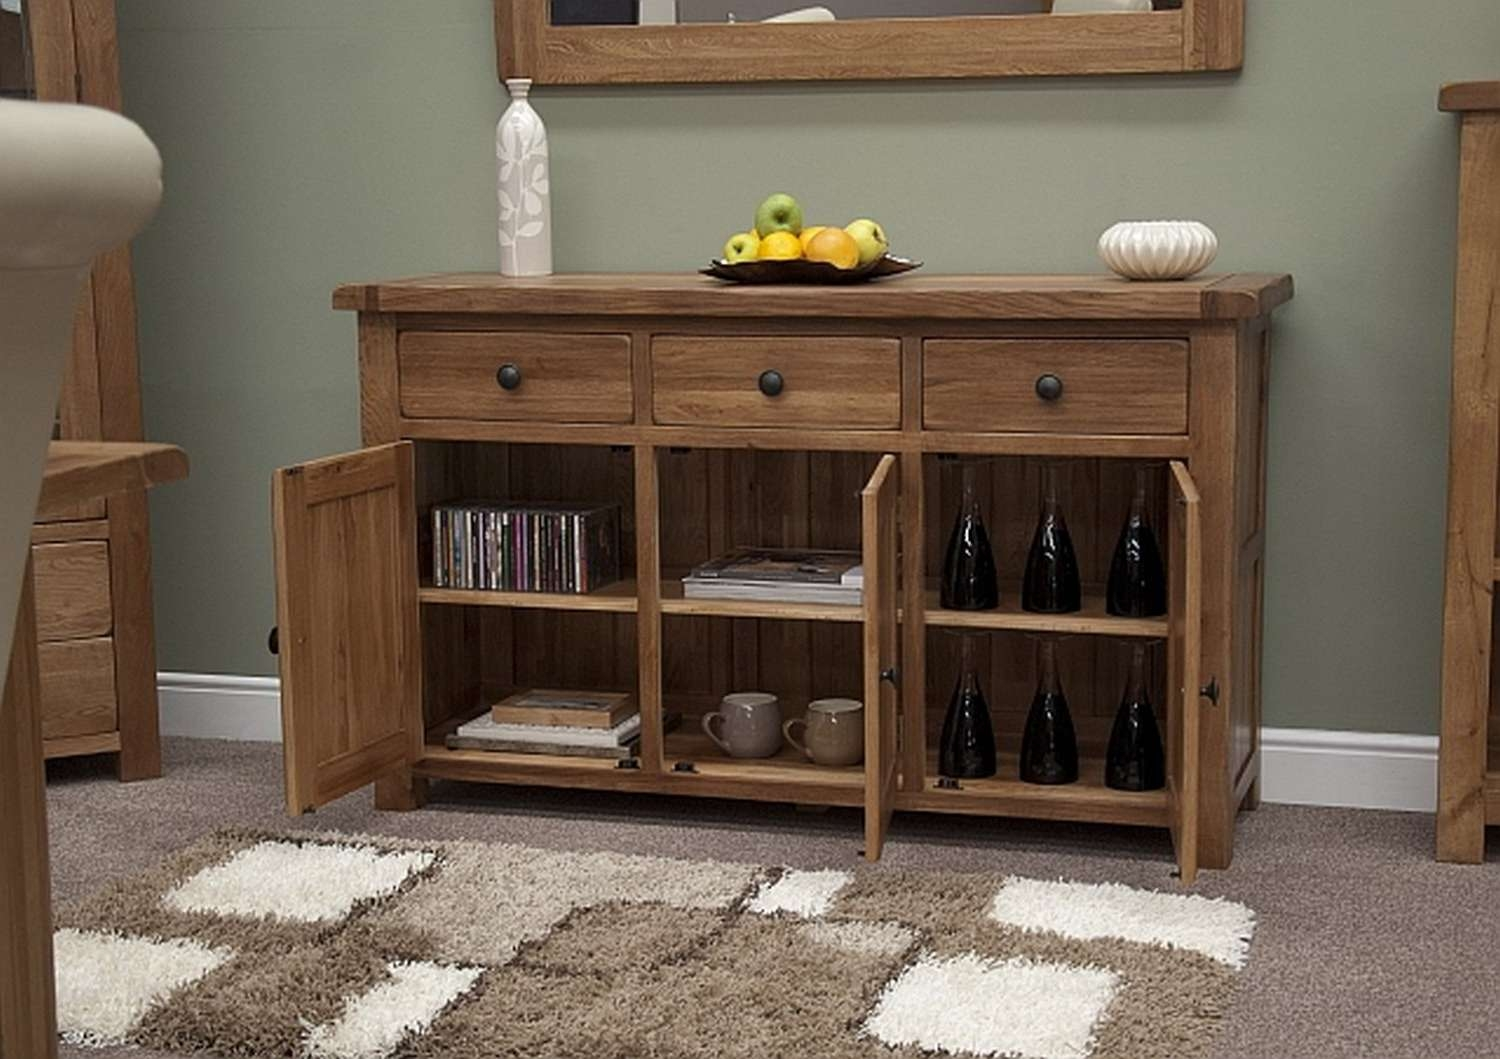 Solid Wood Rustic Sideboard : Ideas Decor Rustic Sideboard – Wood In Rustic Oak Large Sideboards (View 18 of 20)